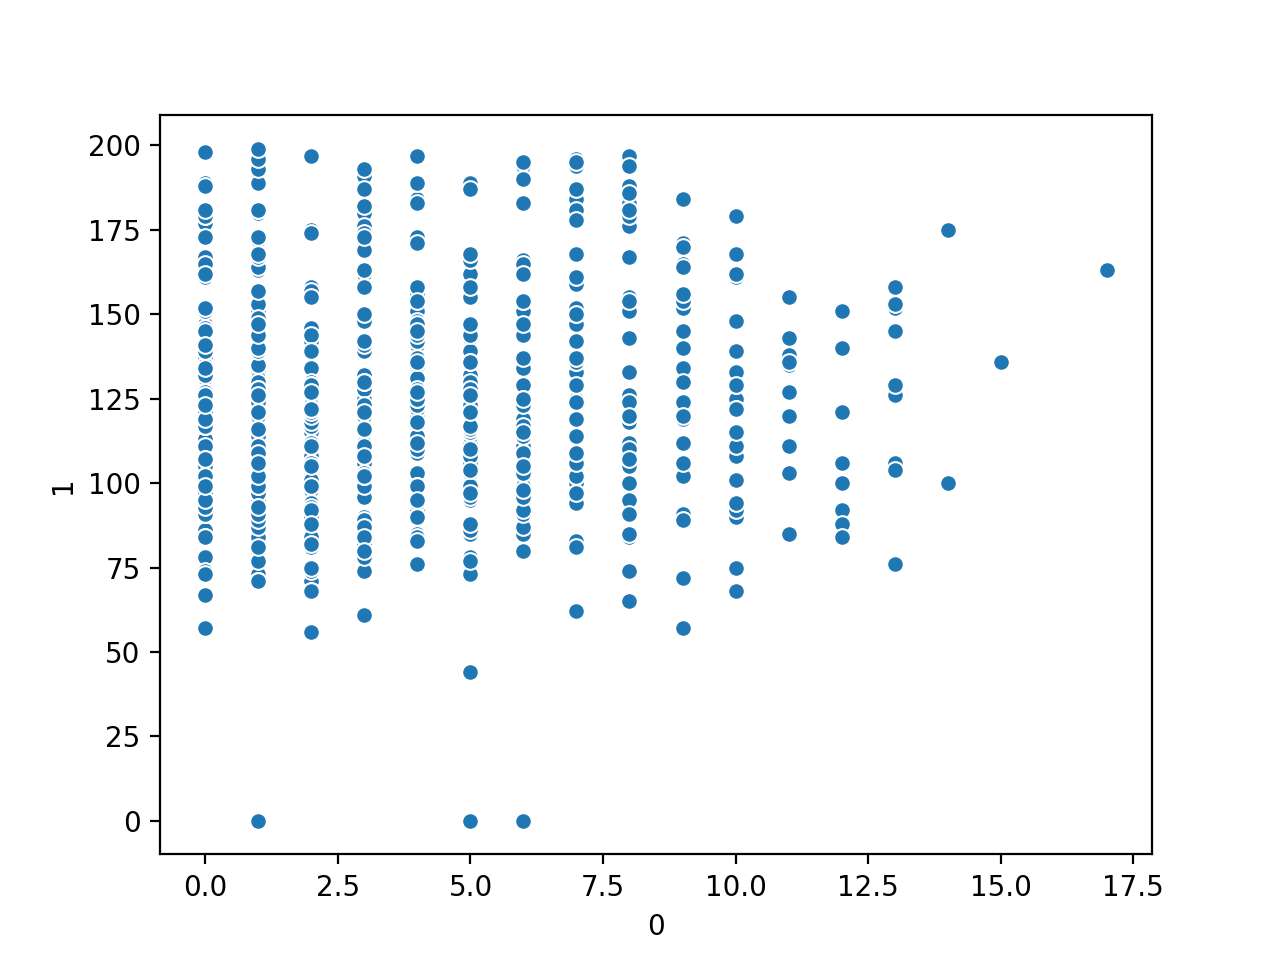 Scatter Plot of Number of Times Pregnant vs. Plasma Glucose Numerical Variables